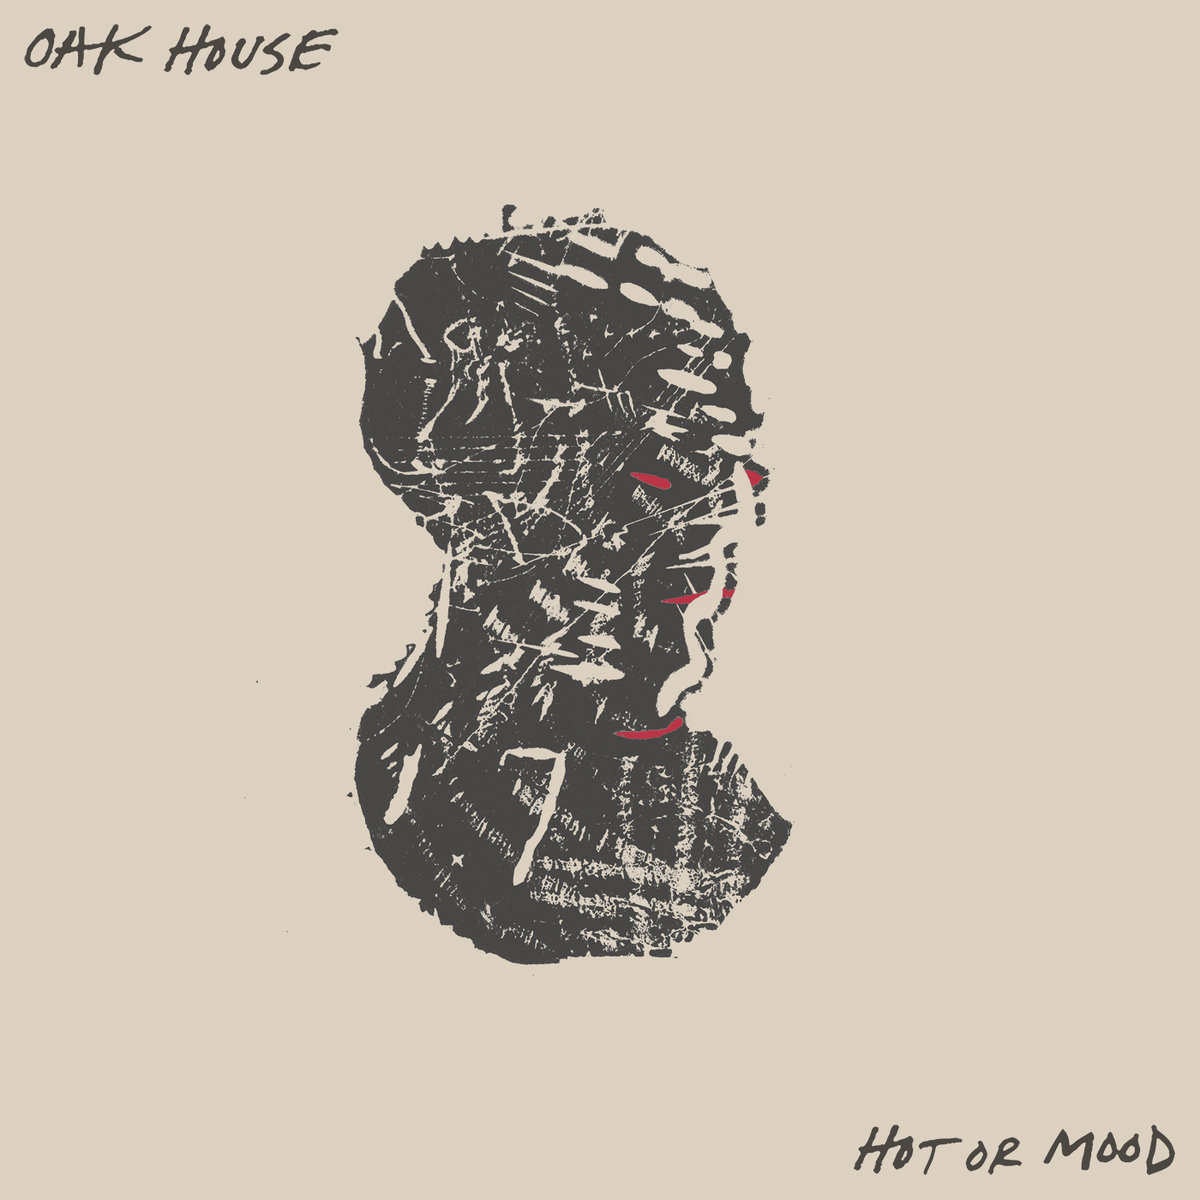 Oak House (Hot or Mood)